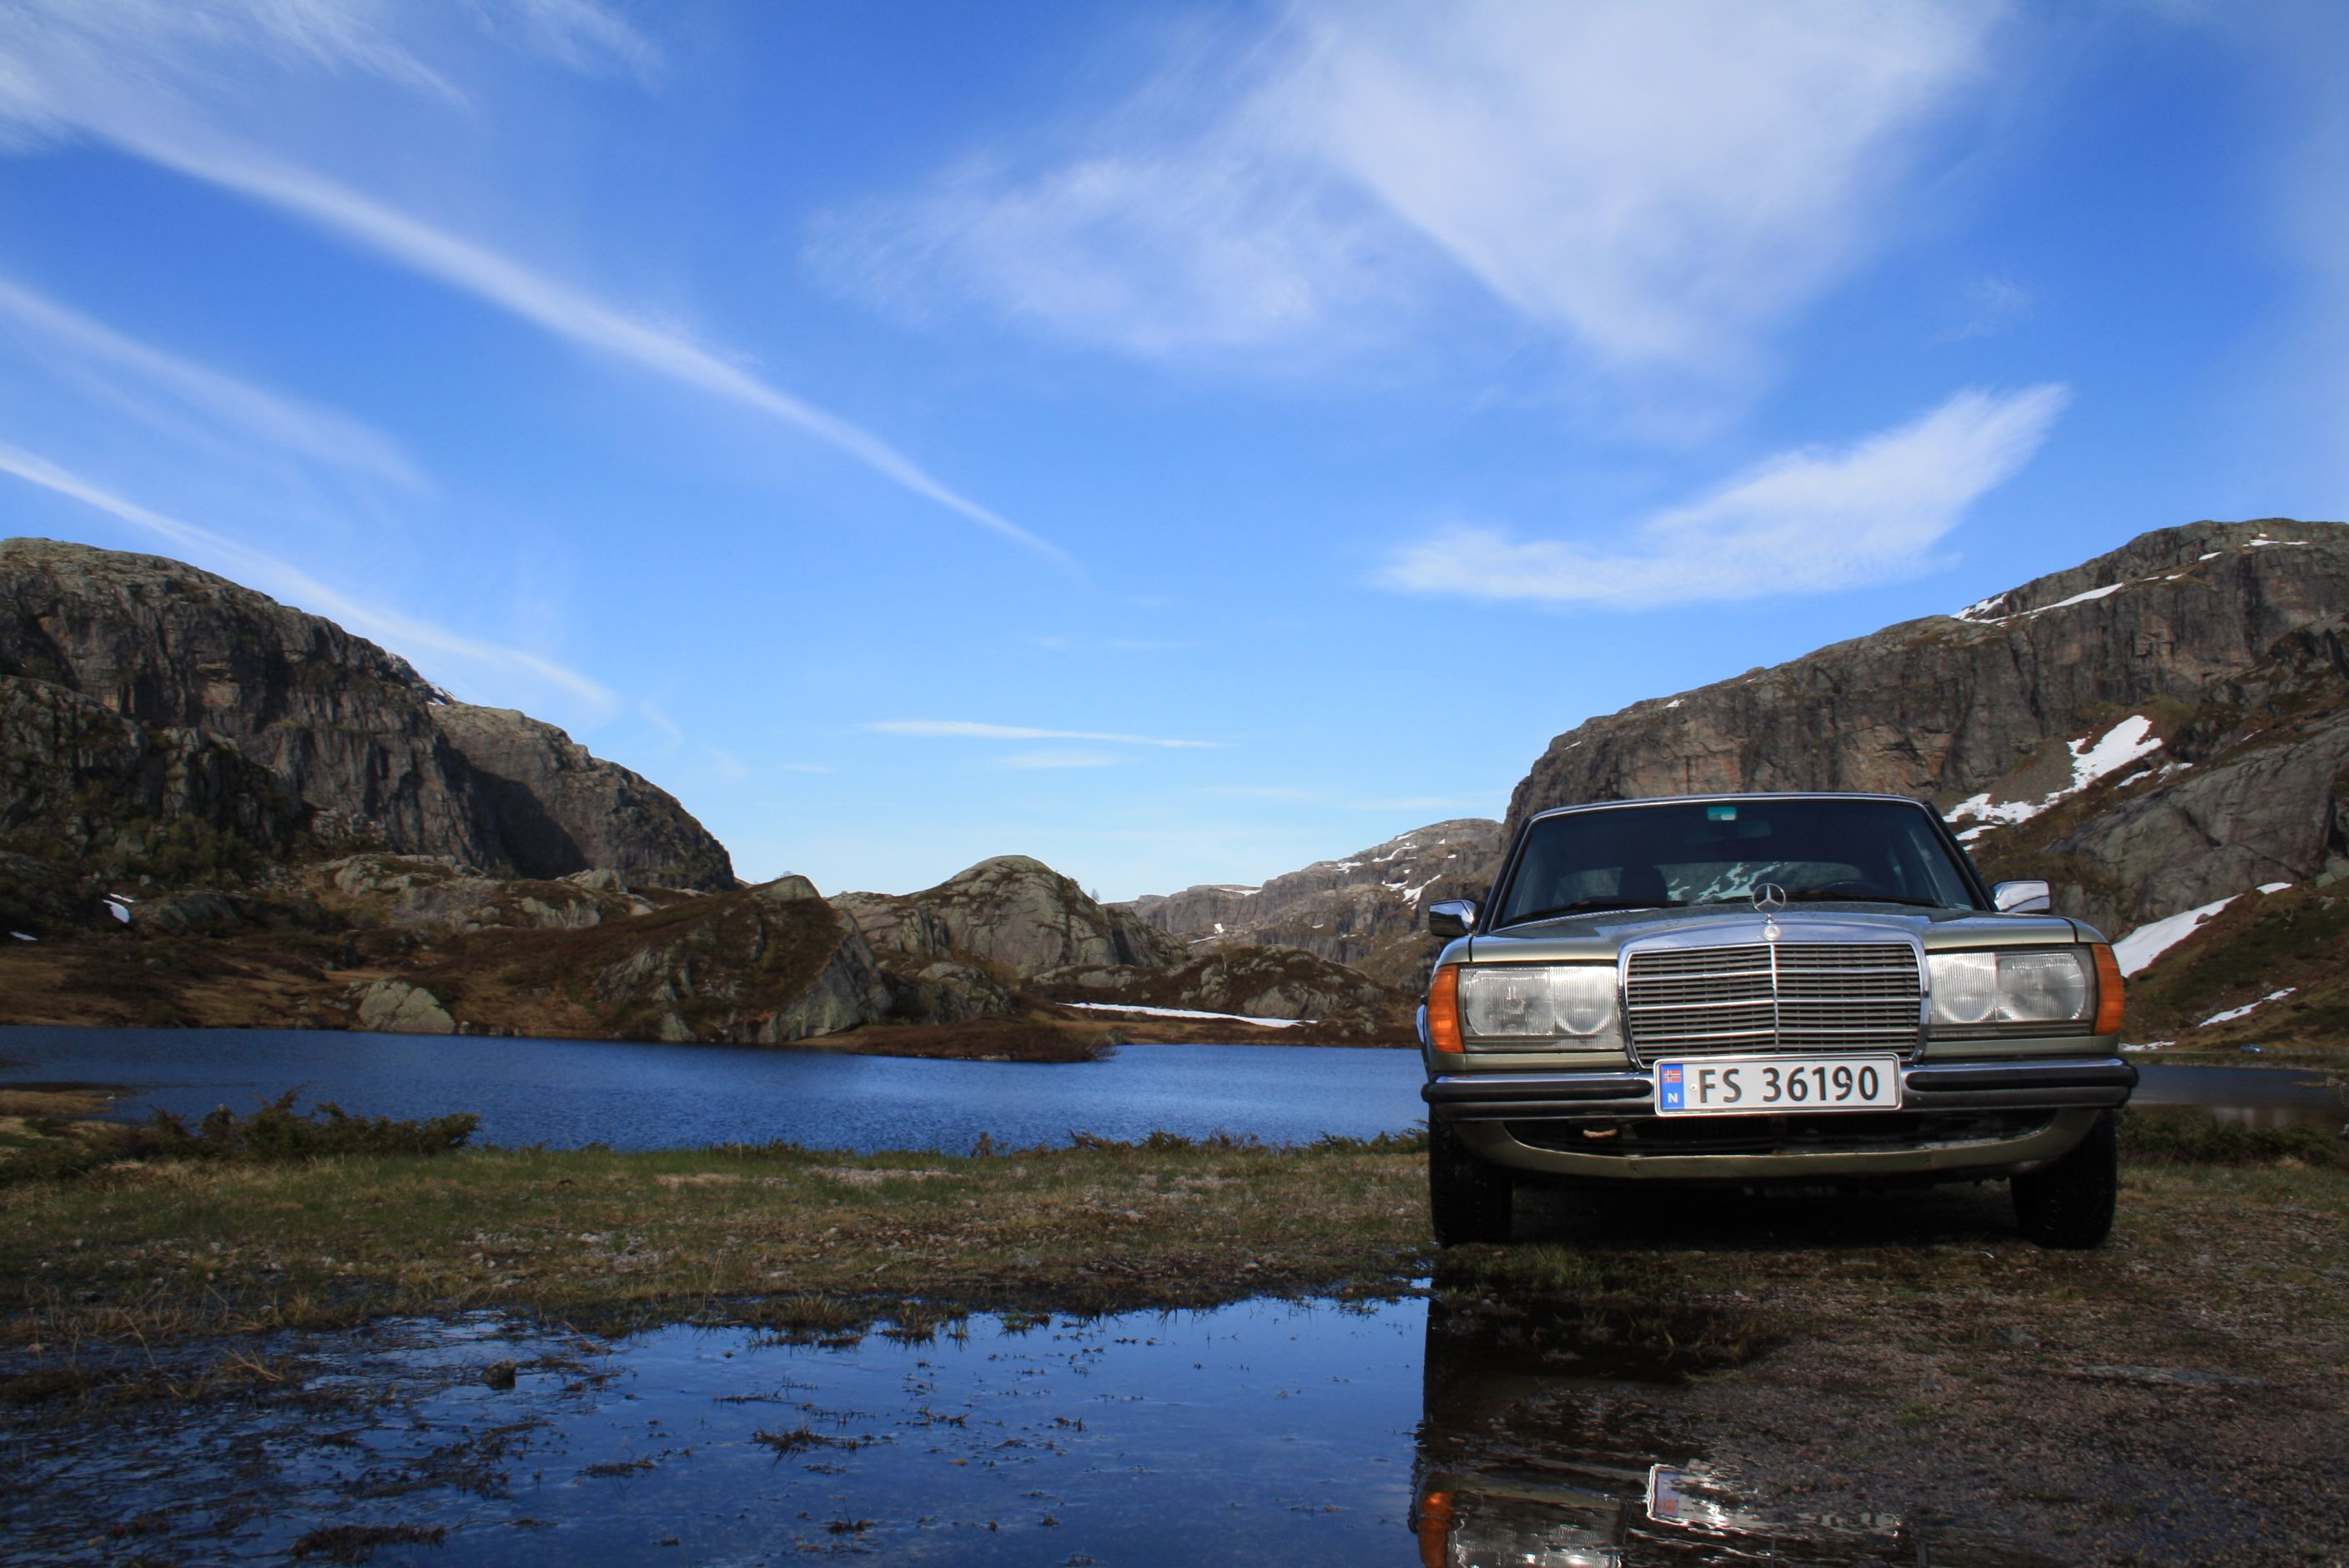 #Norway #Rogaland #w123 #MigthyBenz